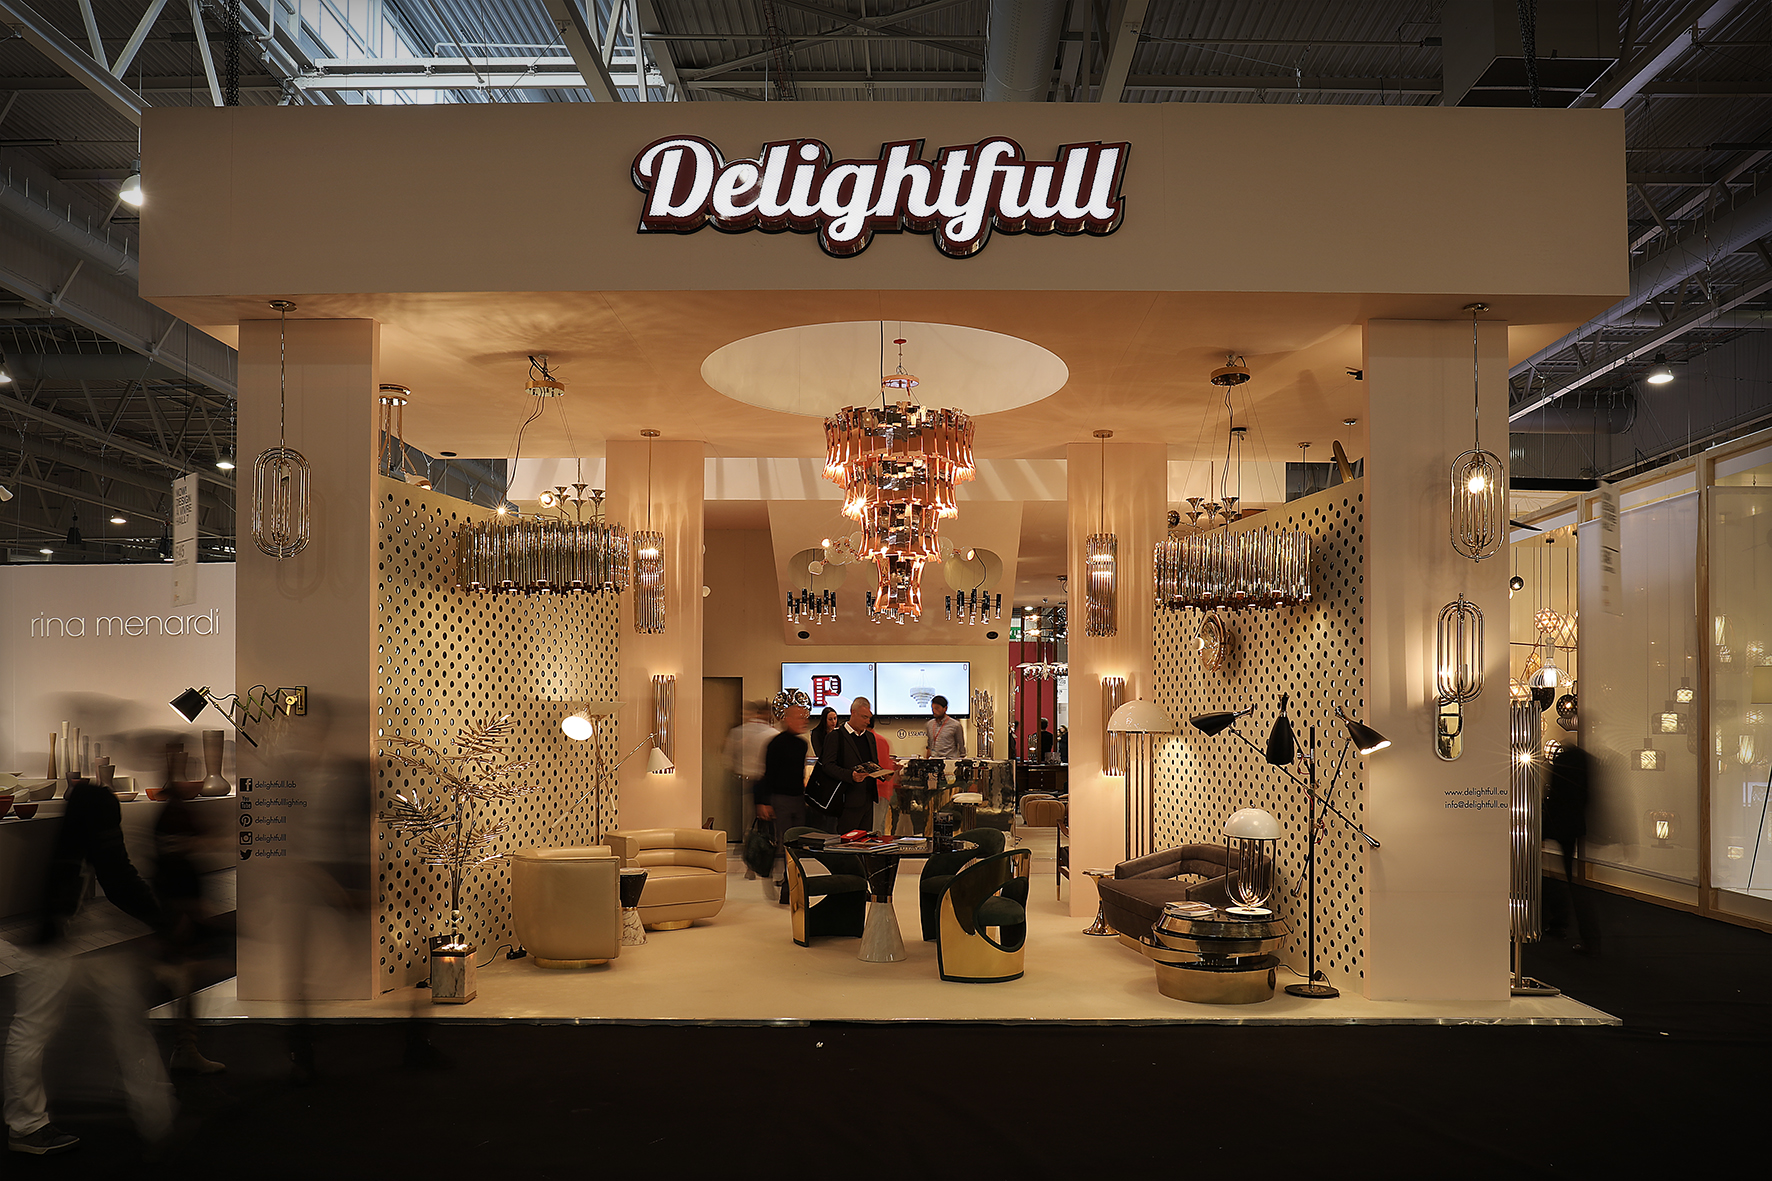 Maison et Objet Paris 2017 Highlight of the day: DelightFull maison et objet paris 2017 Maison et Objet Paris 2017 Highlight of the day: DelightFull delightfull maison objet paris 2017